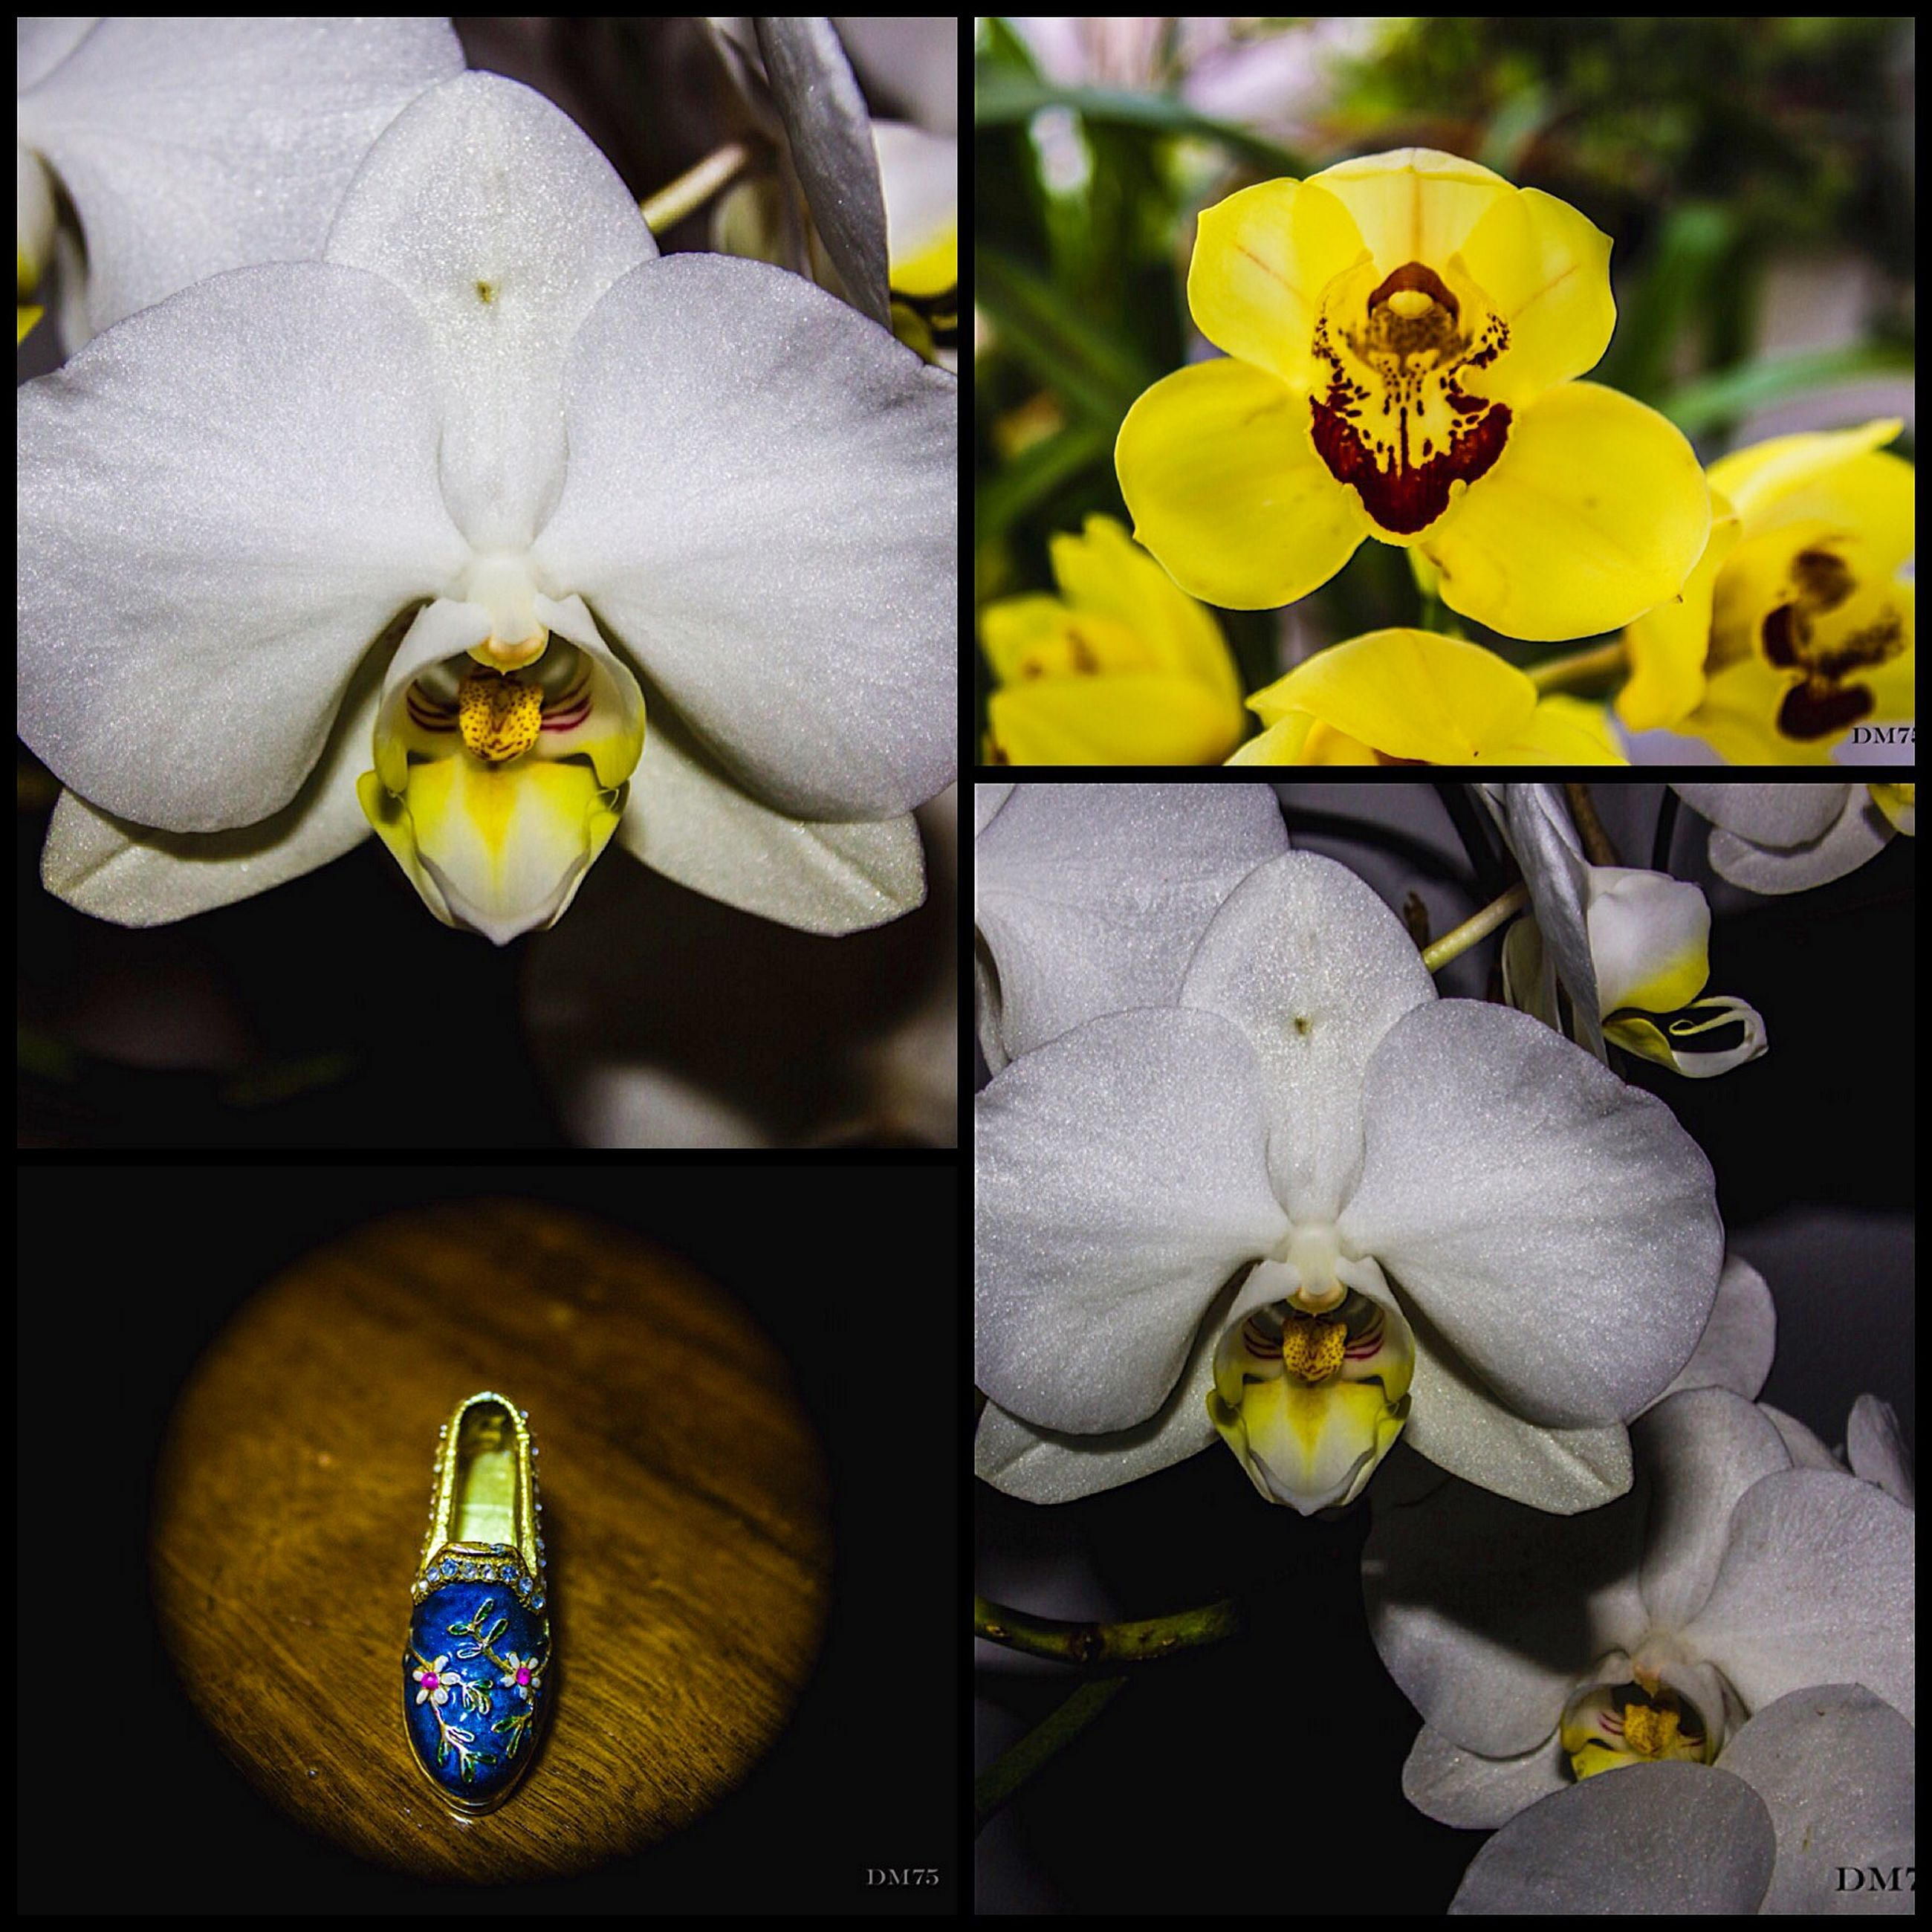 flower, petal, fragility, flower head, indoors, freshness, transfer print, close-up, yellow, vase, orchid, decoration, beauty in nature, auto post production filter, focus on foreground, nature, plant, no people, blooming, glass - material